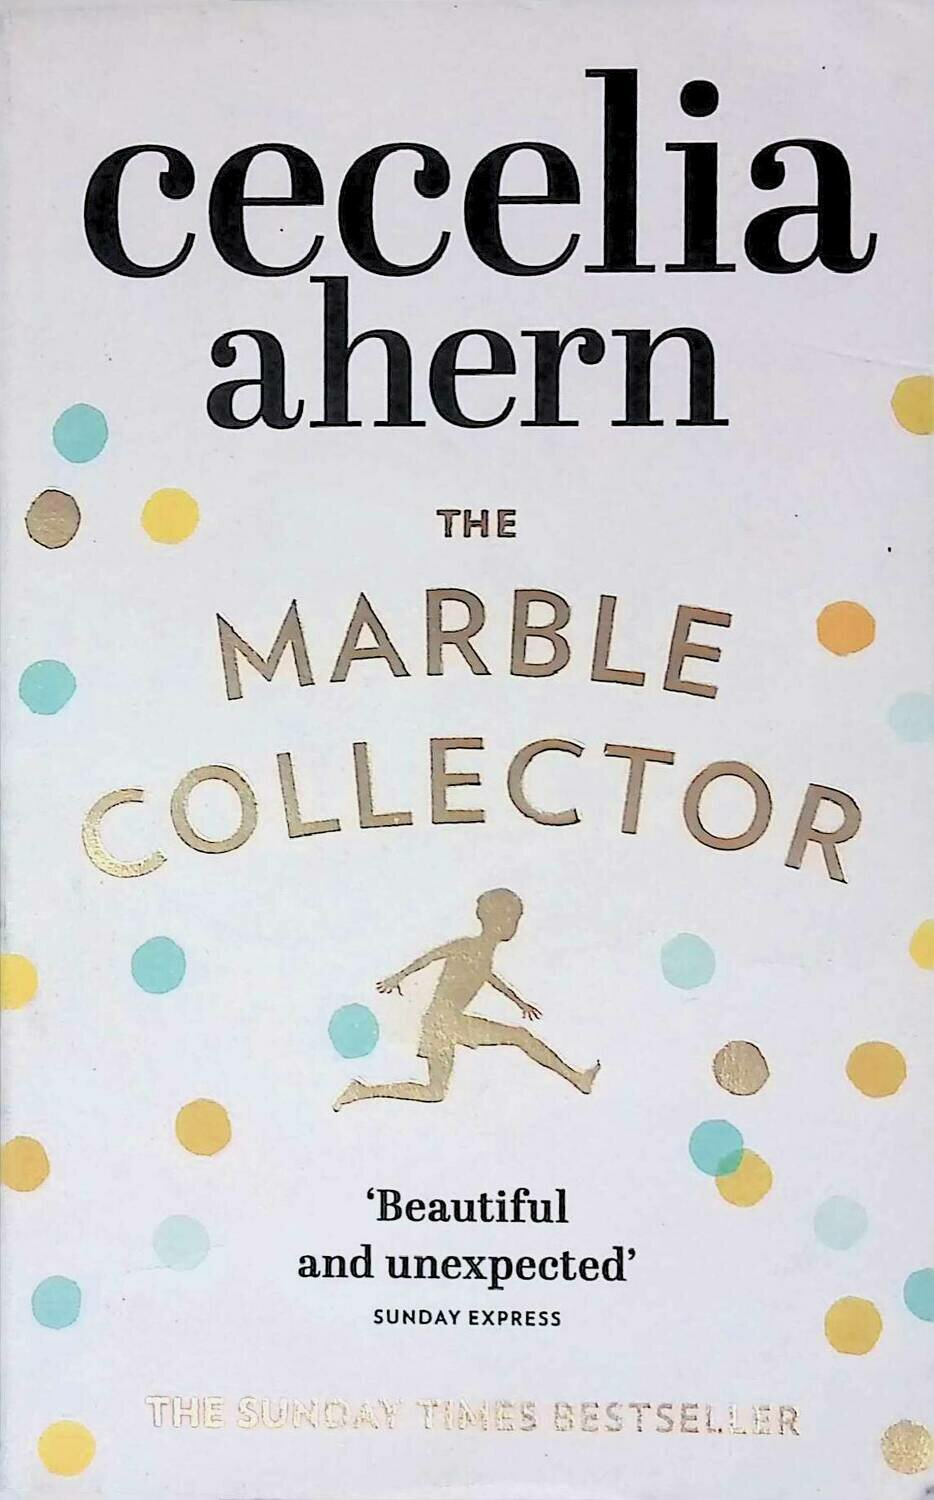 The Marble Collector; Cecelia Ahern